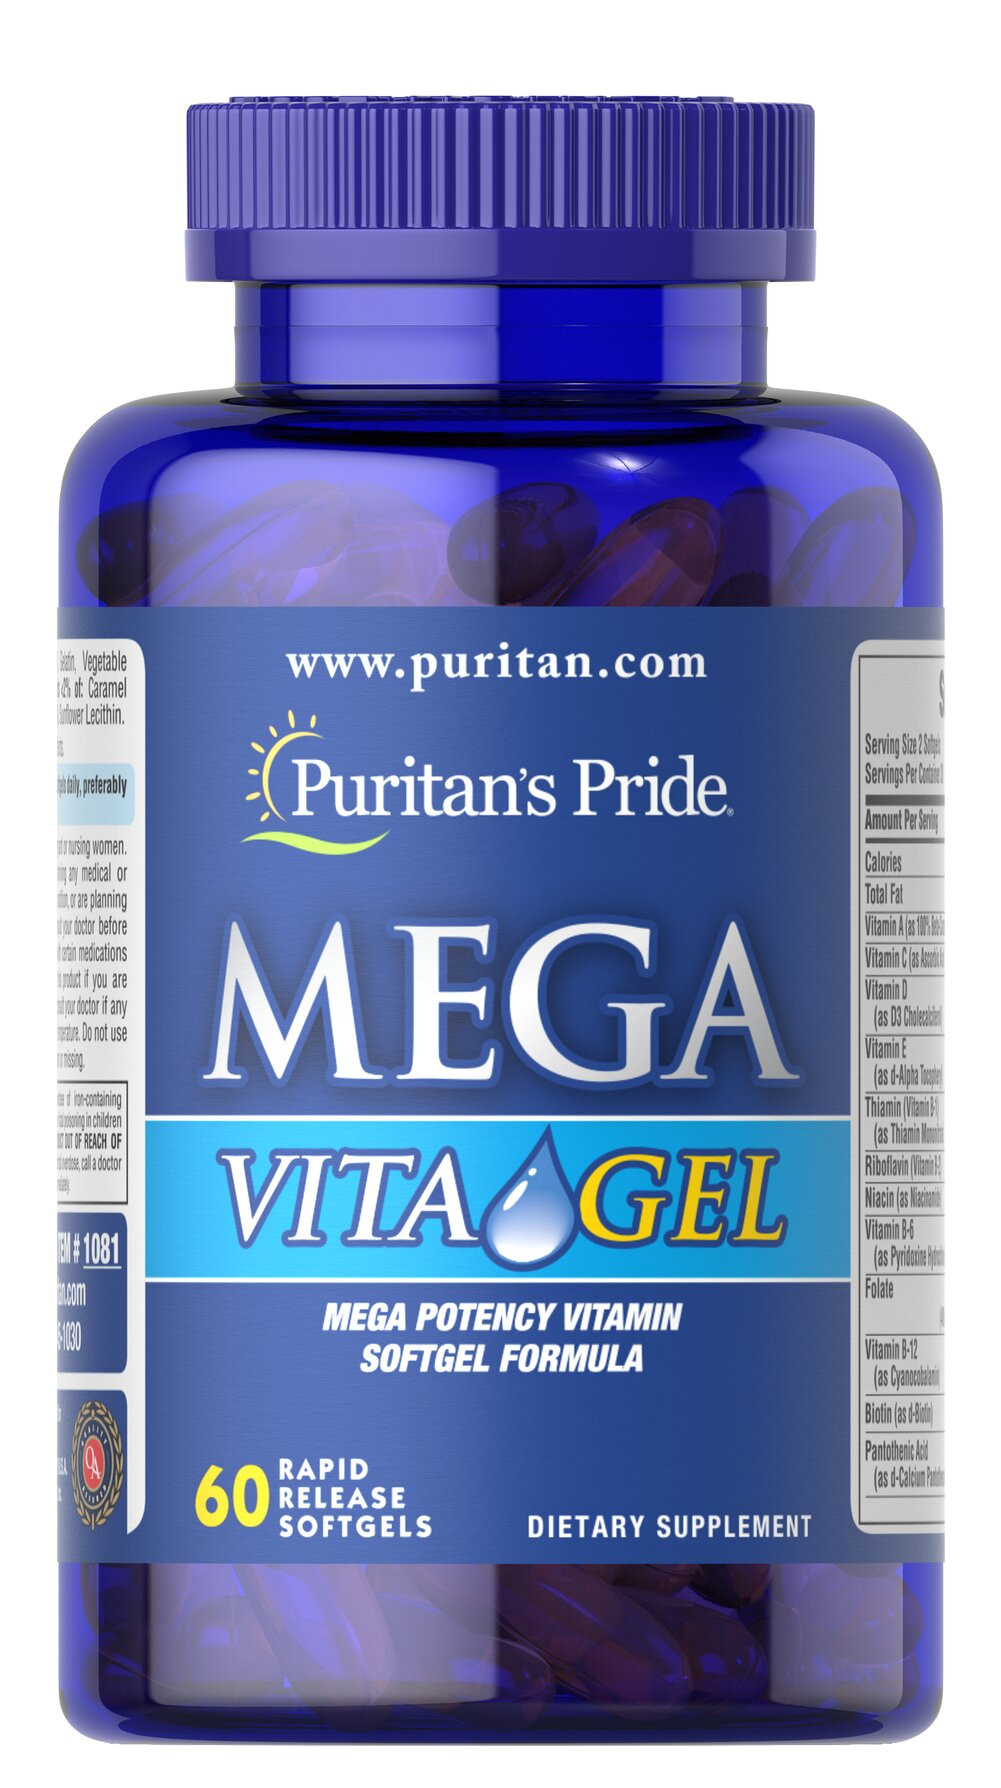 Mega Vita Gel Multivitamins <p>Mega Vita Gel is an exclusive vitamin and mineral formula. Each softgel contains 36 important nutrients without sugar, starch, artificial flavors or preservatives!  Adults can take two softgels daily with a meal.</p> 60 Softgels  $14.39